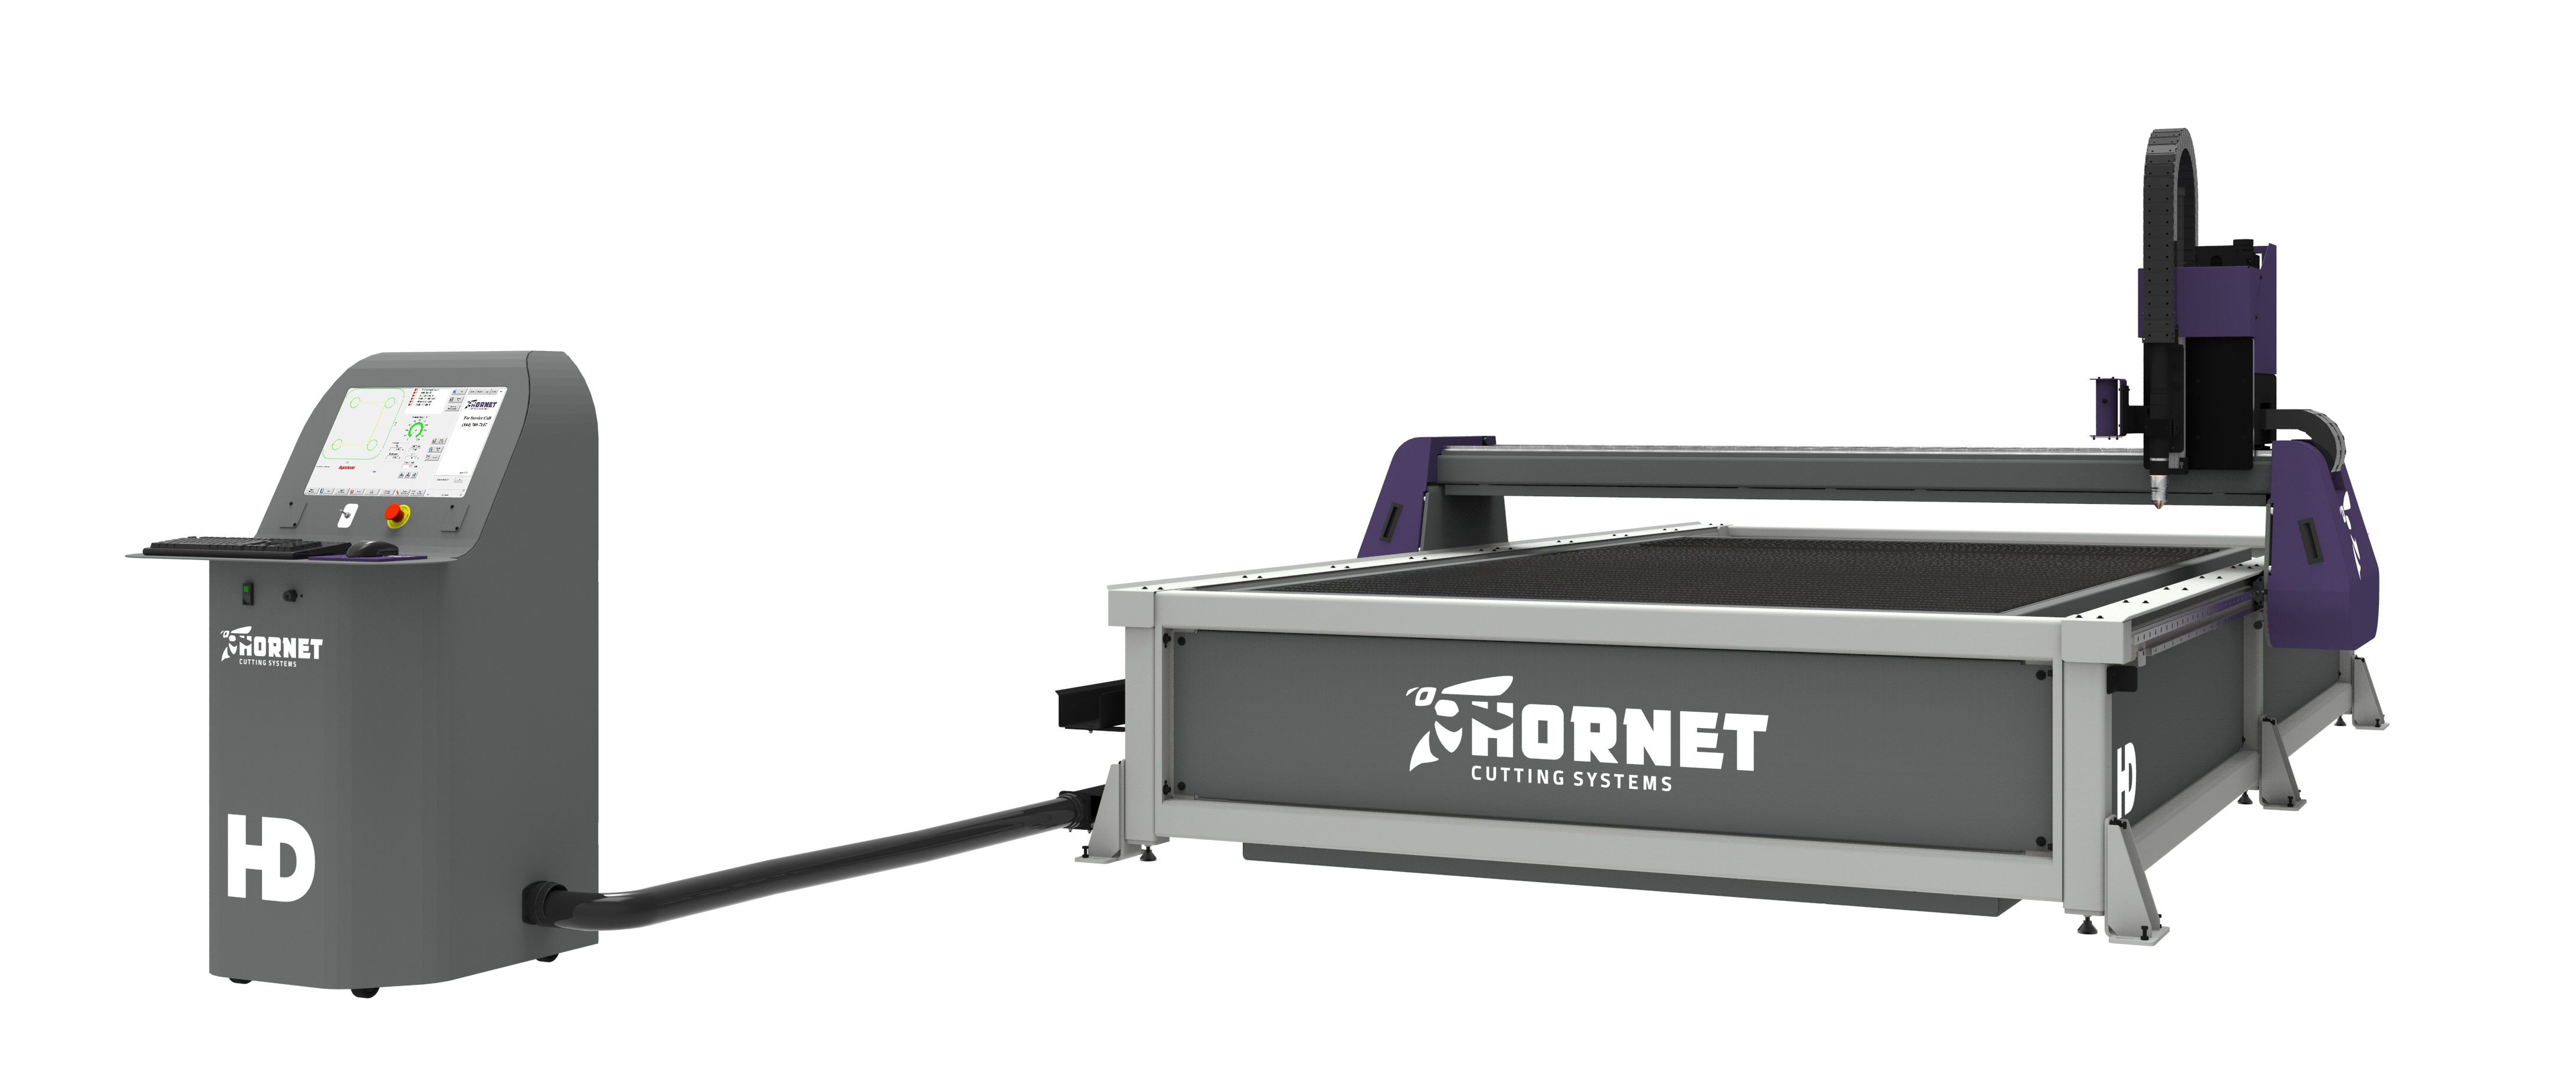 HD CNC Plasma Cutter Standard Features of the